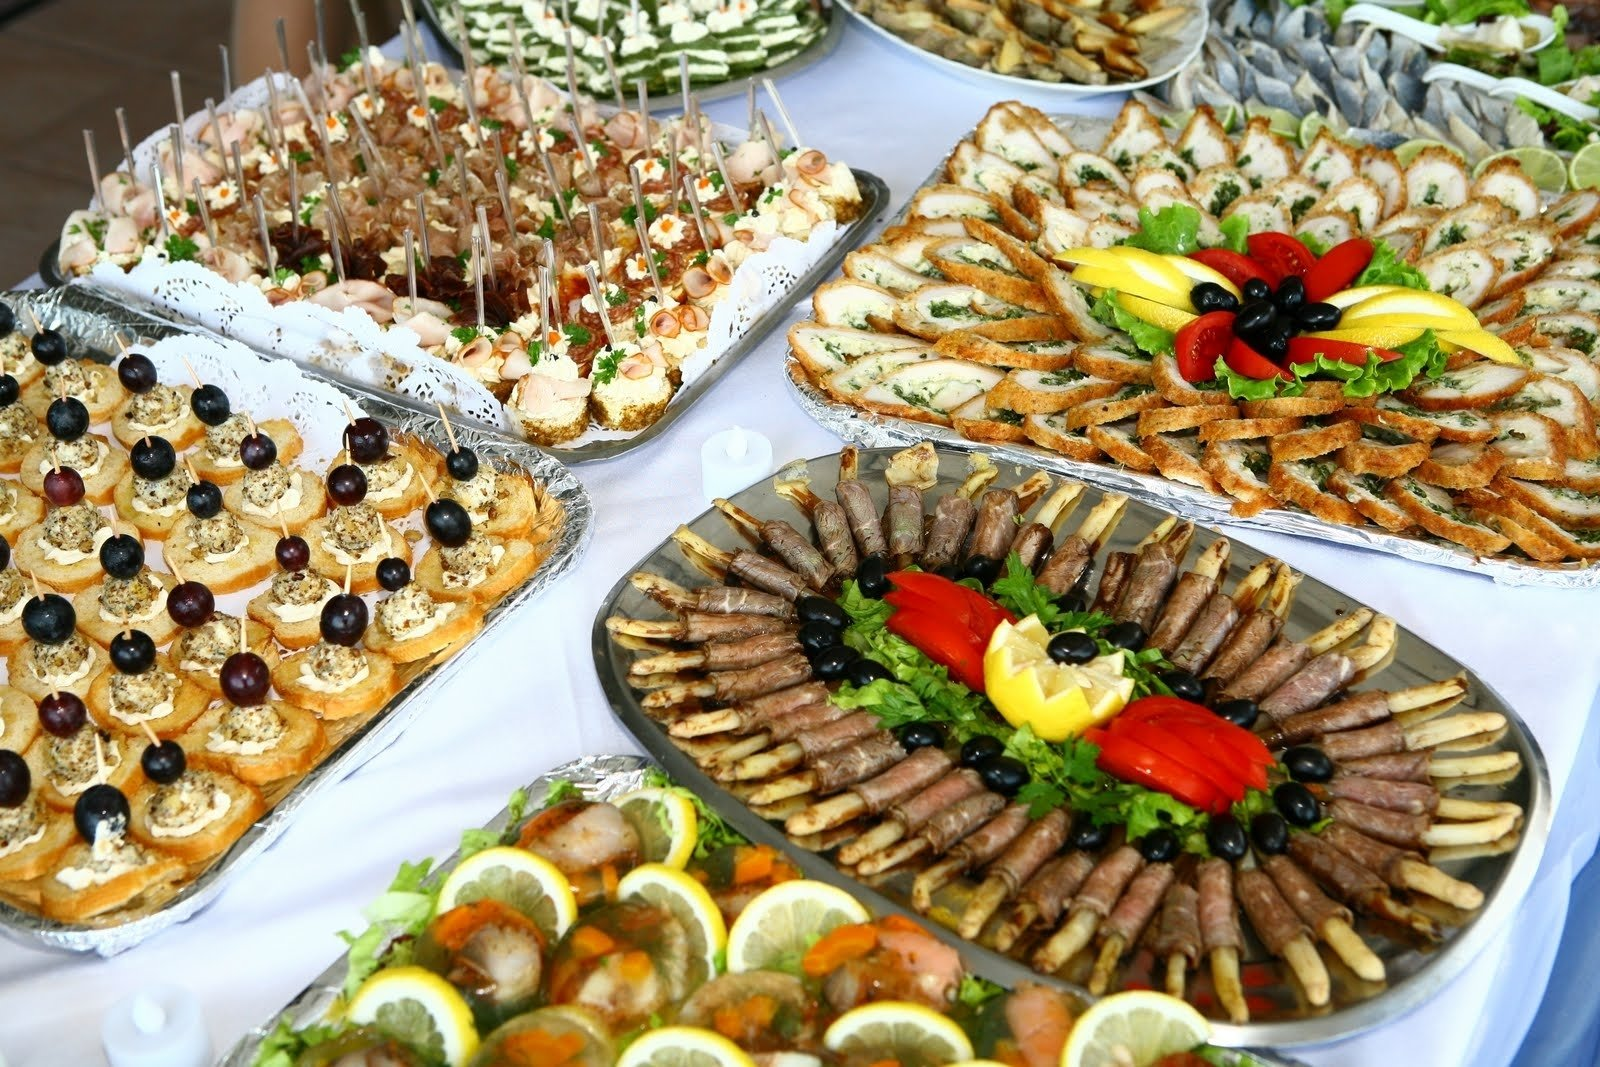 10 Spectacular Easy Party Food Ideas For Adults holiday ideas party ideas arranging the foods 3 2020